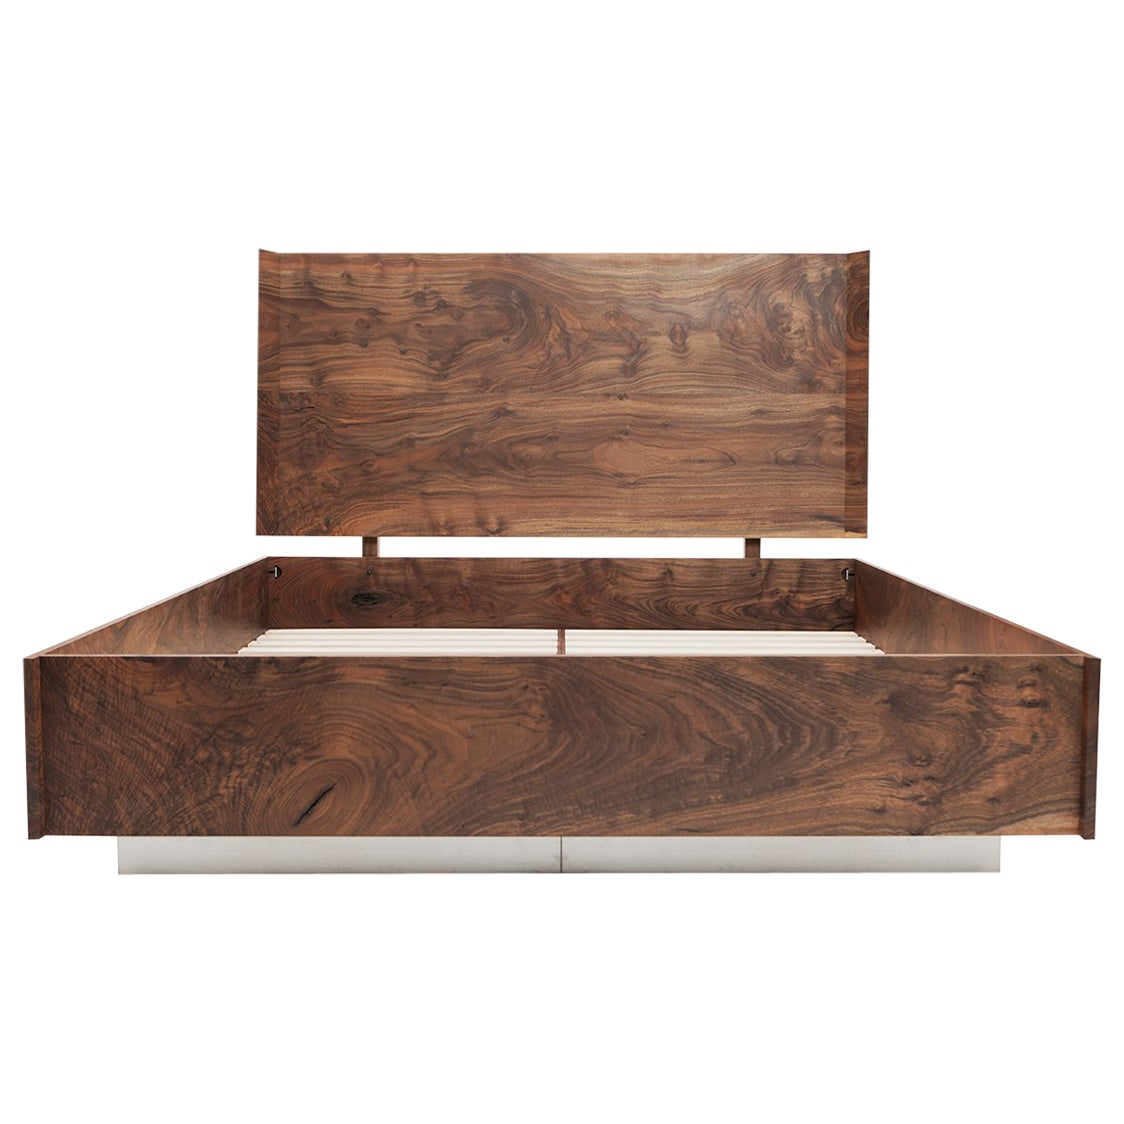 Modern Solid Claro Walnut and Stainless Steel King Sized Shear Bed